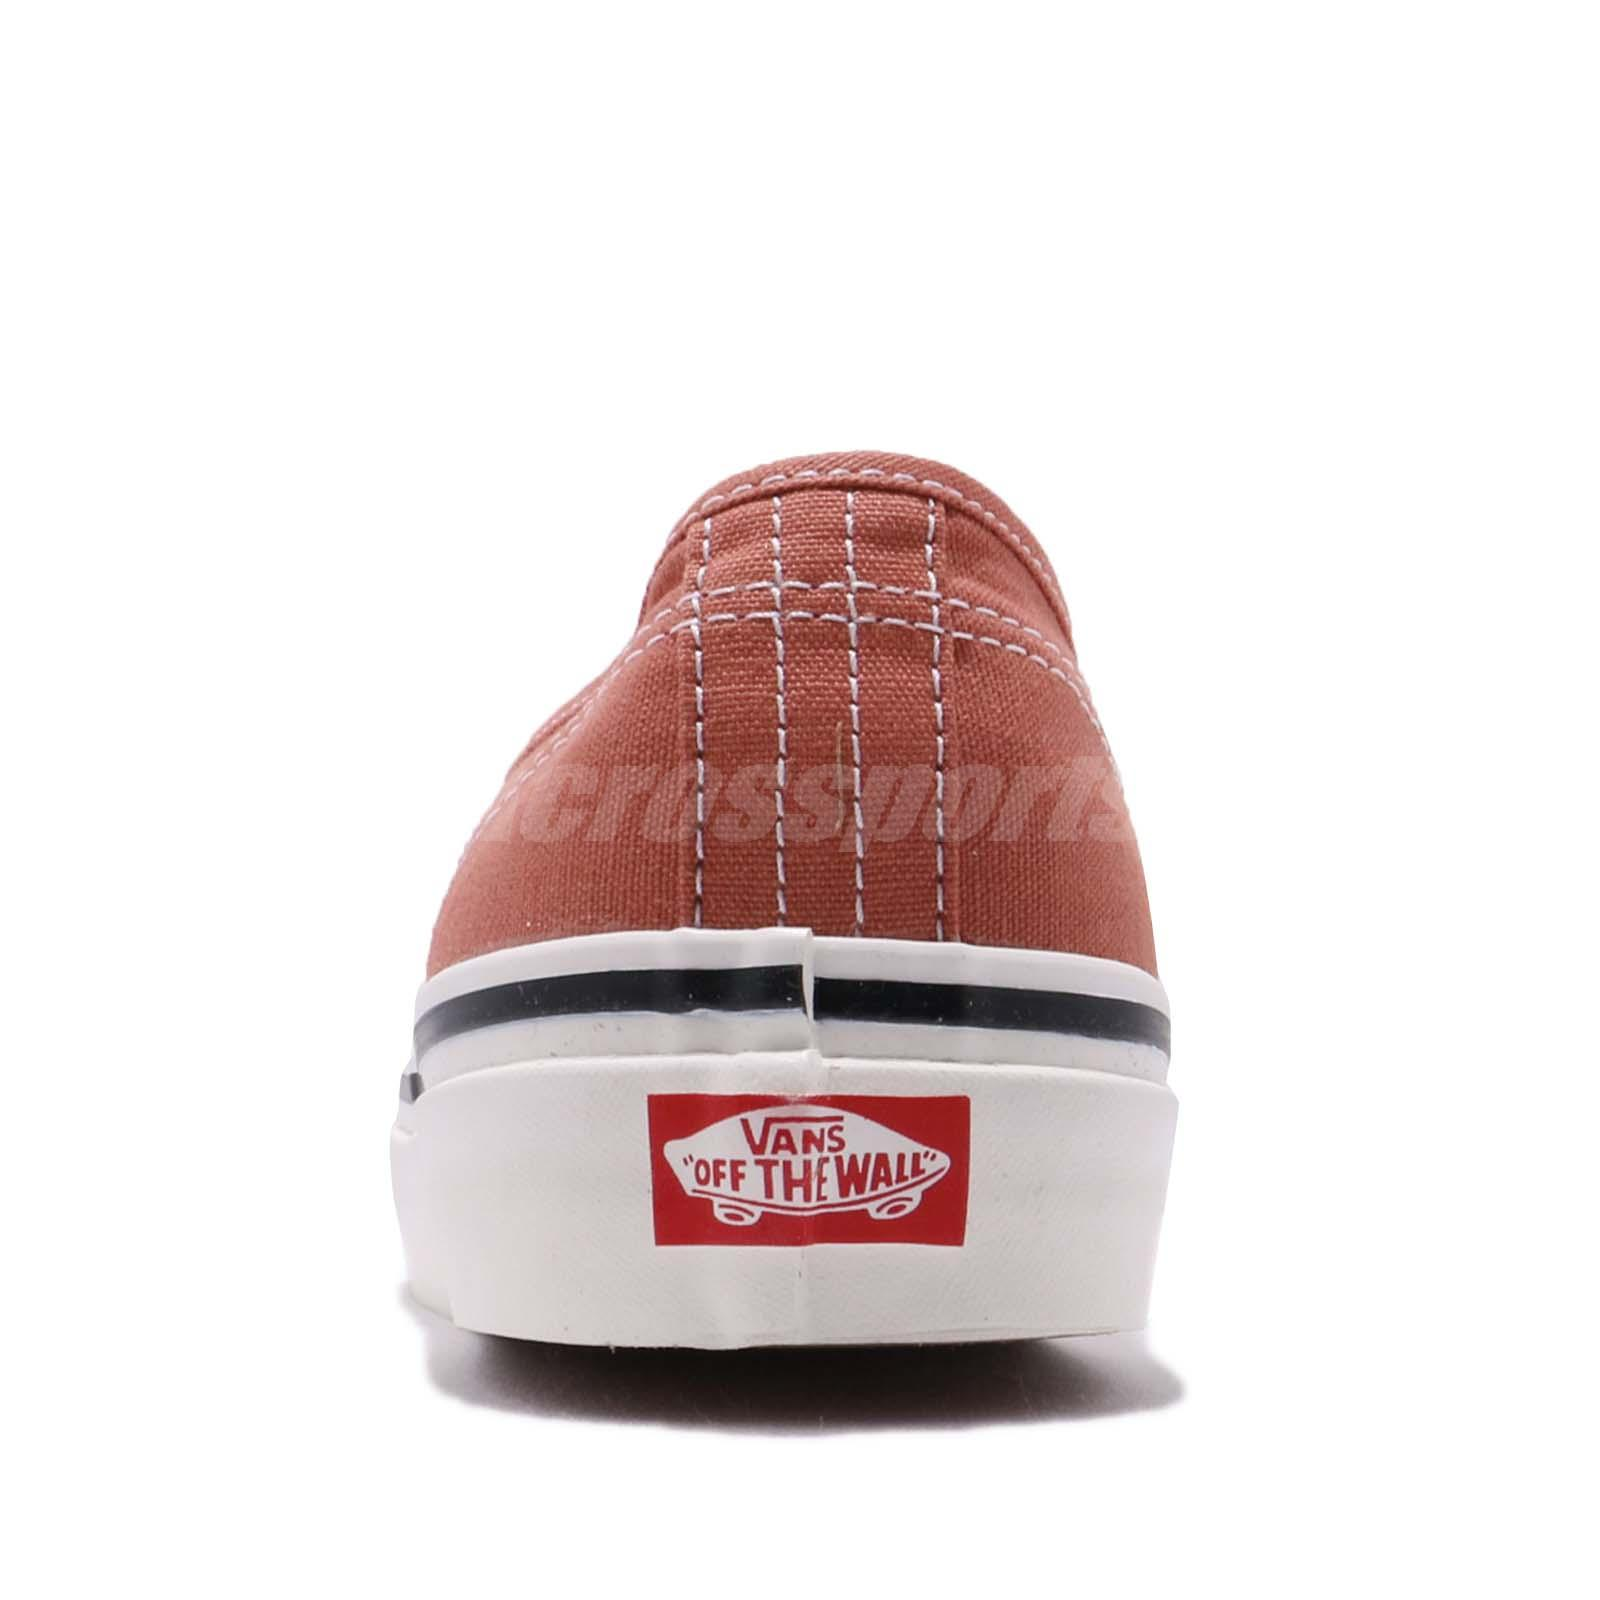 822d8a0da7 Vans Authentic 44 DX Anaheim Factory OG Rust Men Skate Boarding ...